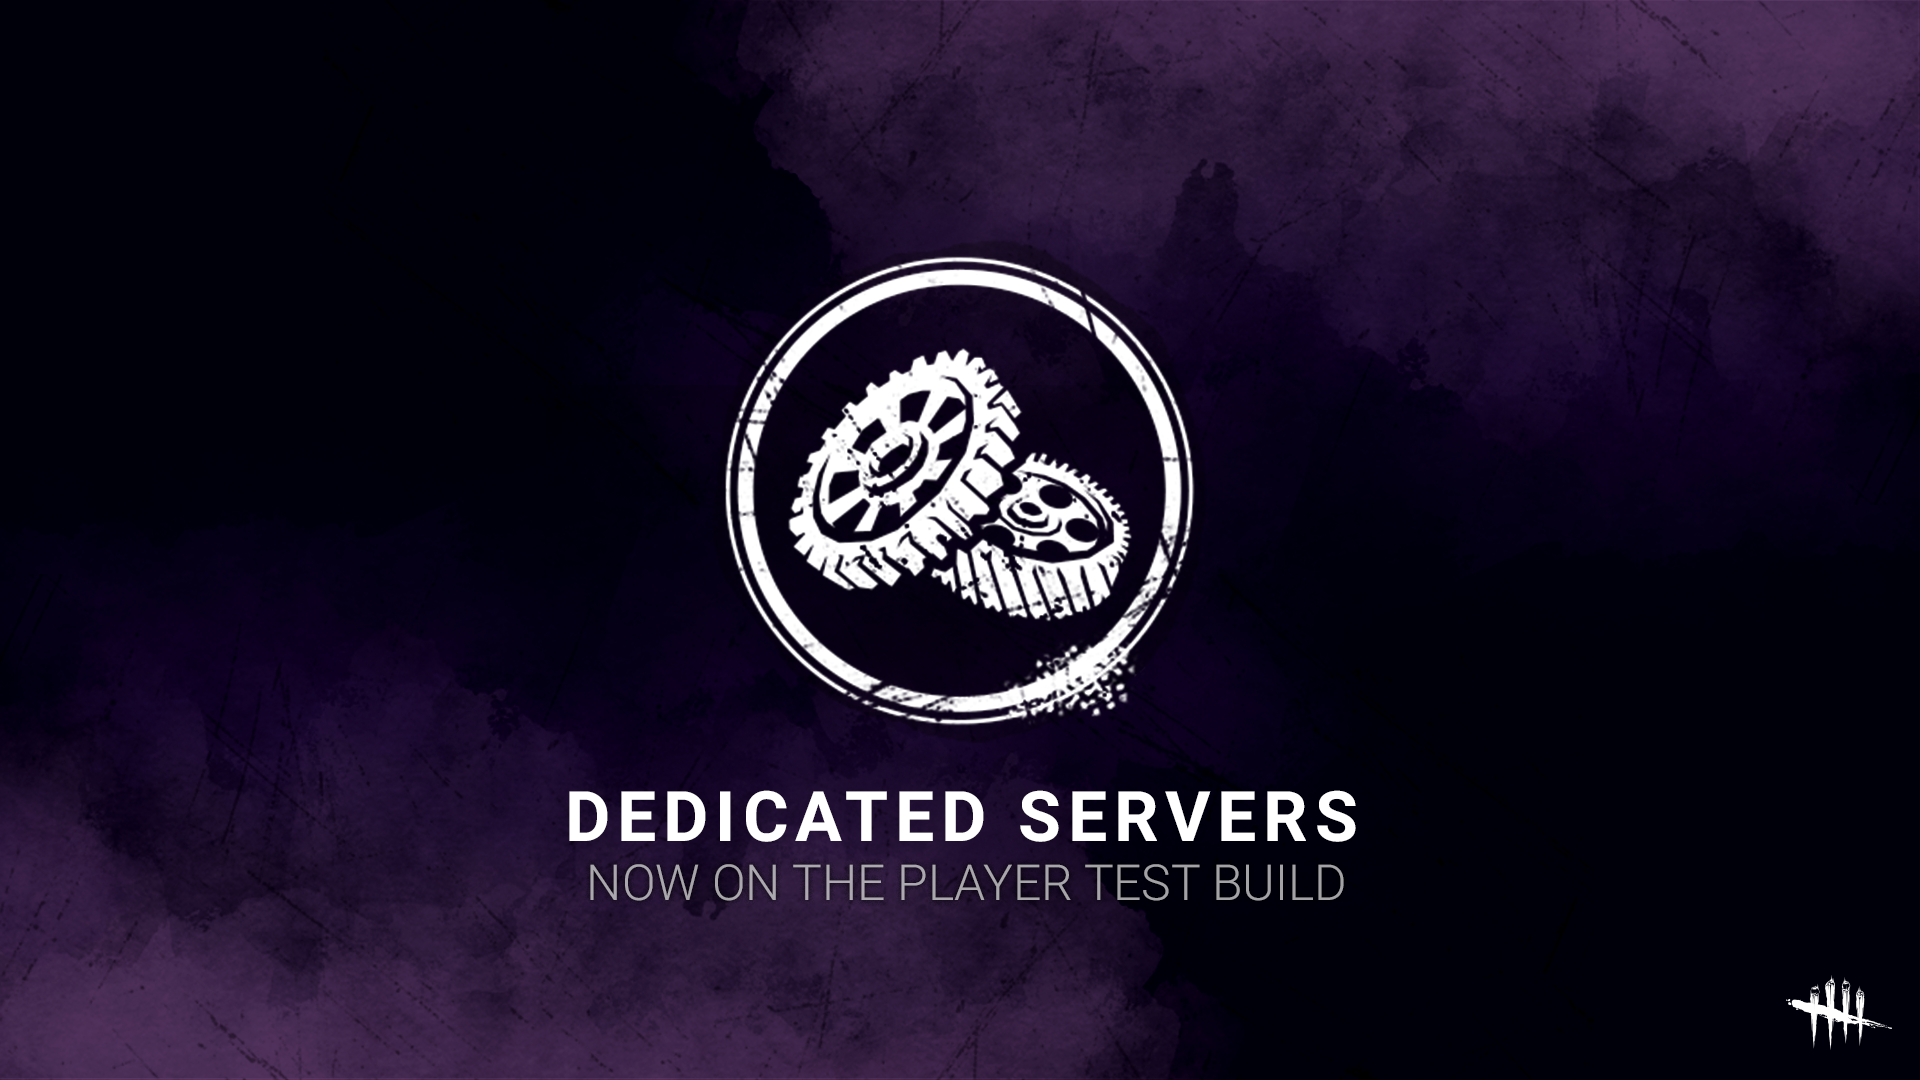 DBD_Tech_Template_DedicatedServers-Nowontheplayertestbuild.png